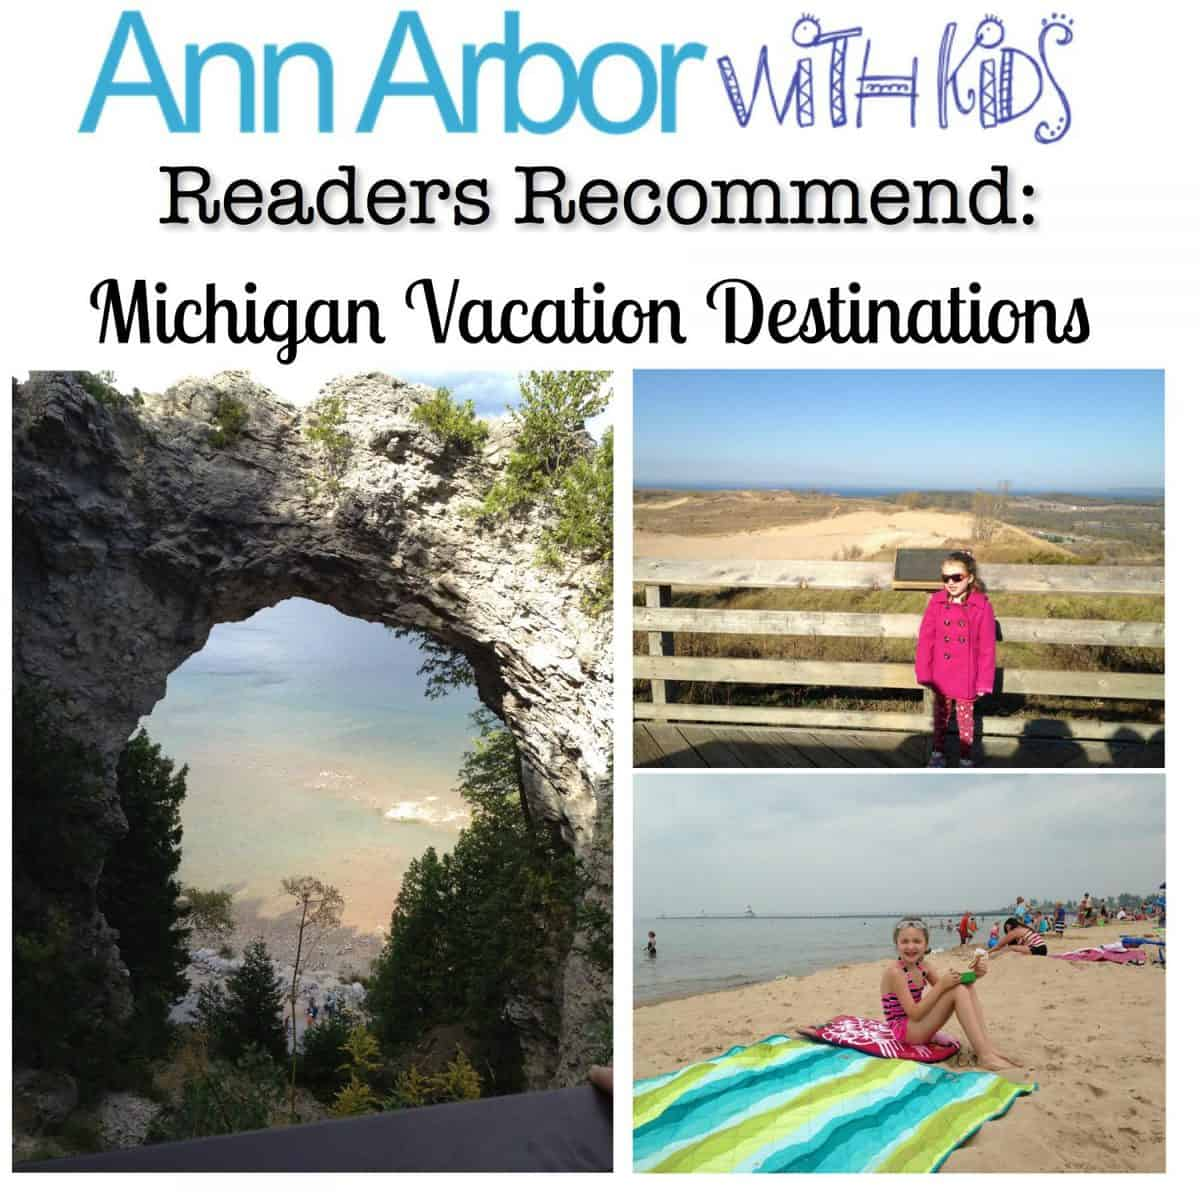 images?q=tbn:ANd9GcQh_l3eQ5xwiPy07kGEXjmjgmBKBRB7H2mRxCGhv1tFWg5c_mWT Best Cool Vacation Ideas In Michigan For Families Interactive Now @capturingmomentsphotography.net